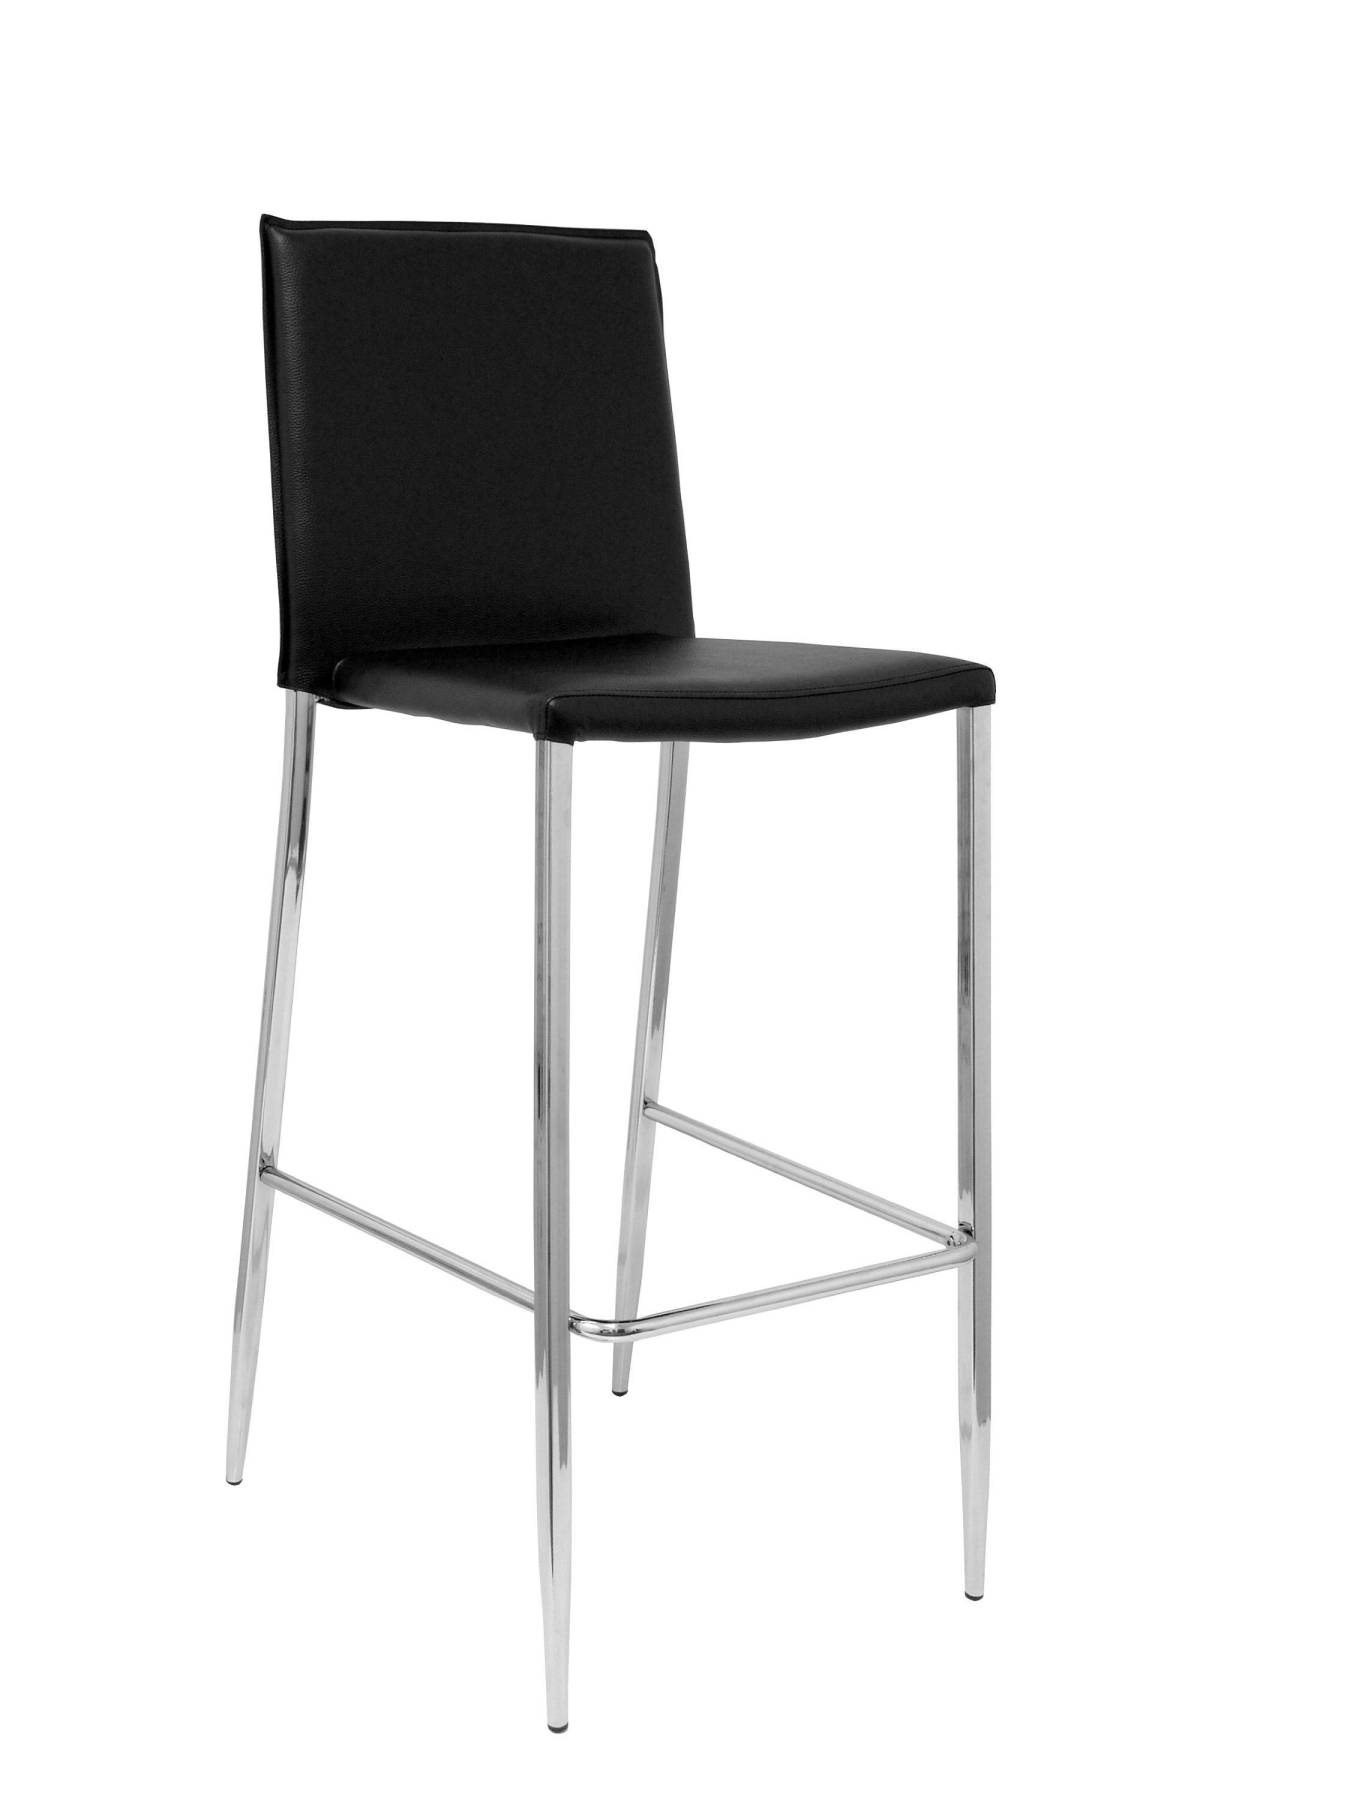 Pack Of 4 Barroom Stools Fixed 4 Legs, Upholstered In Similpiel Black, With Chrome Legs. PIQUERAS & CURLED Model L